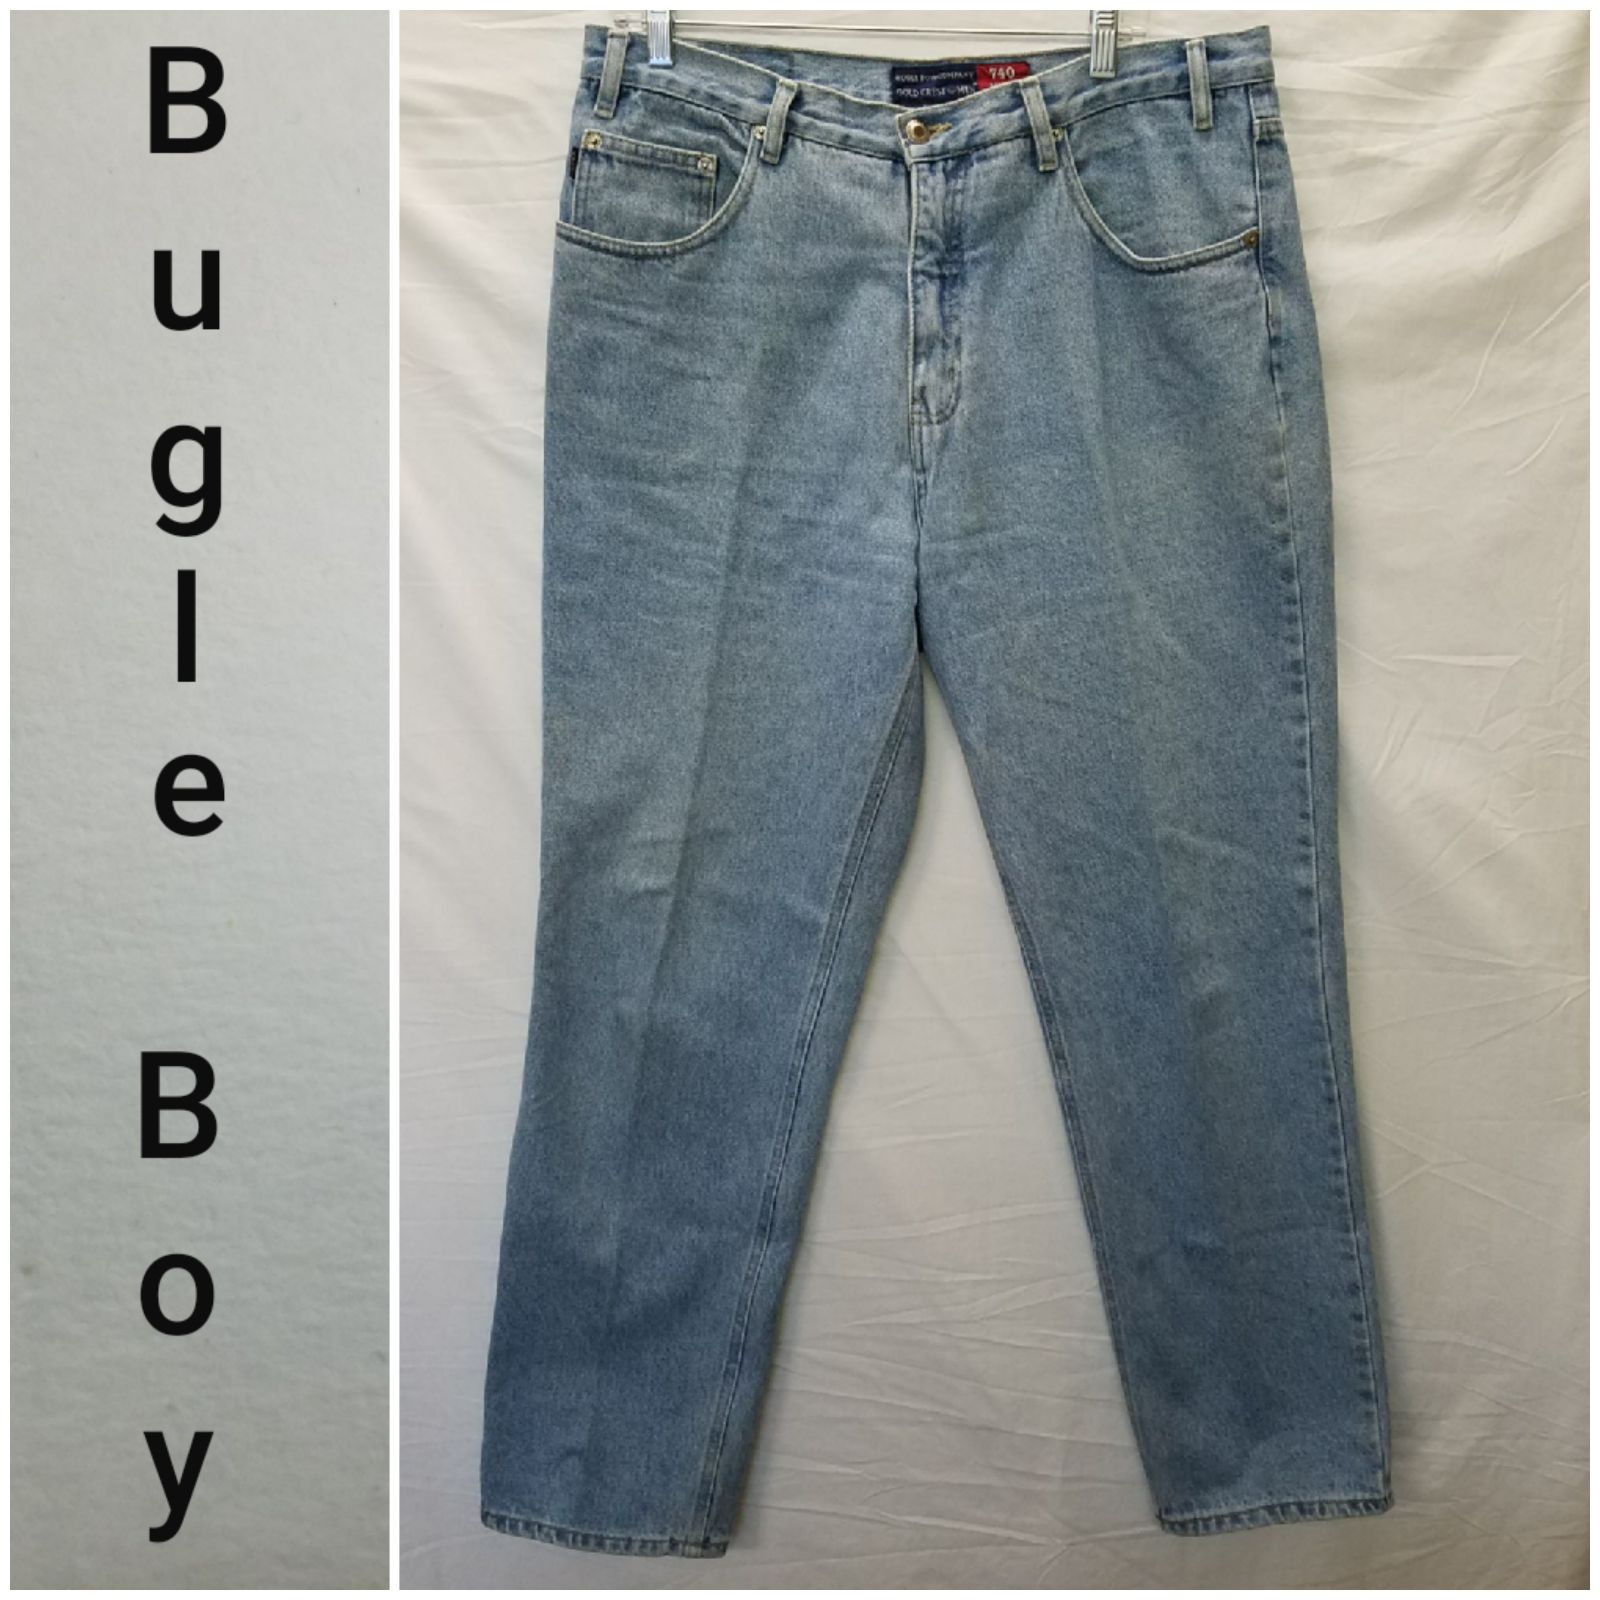 Bugle Boy Mens relaxed fit jeans